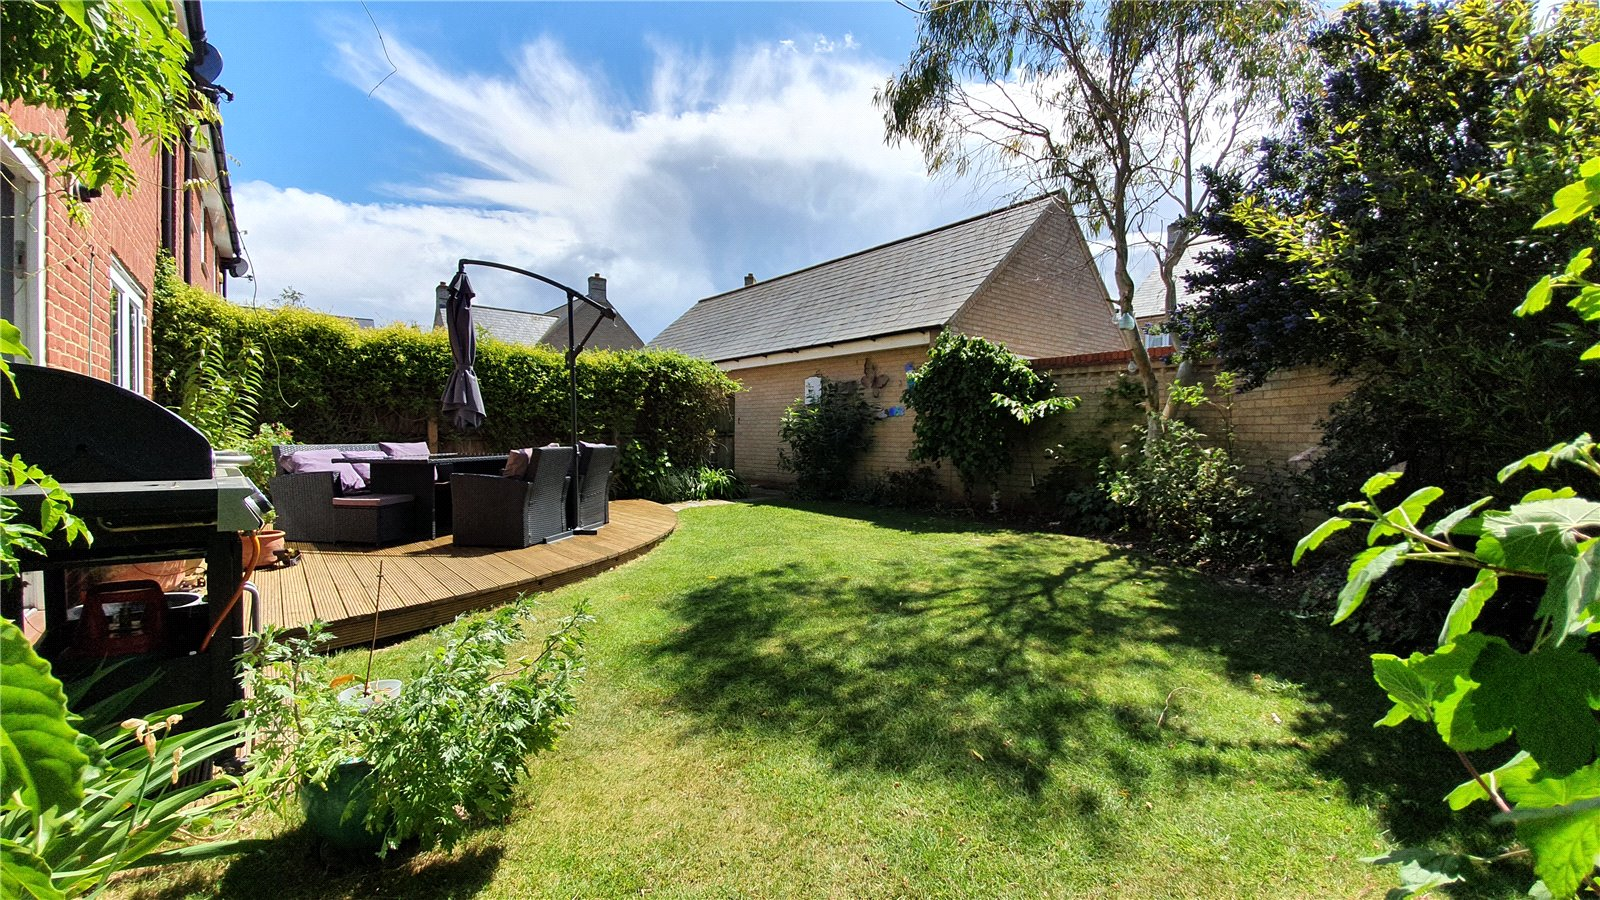 3 bed house for sale in Lannesbury Crescent, St Neots 4